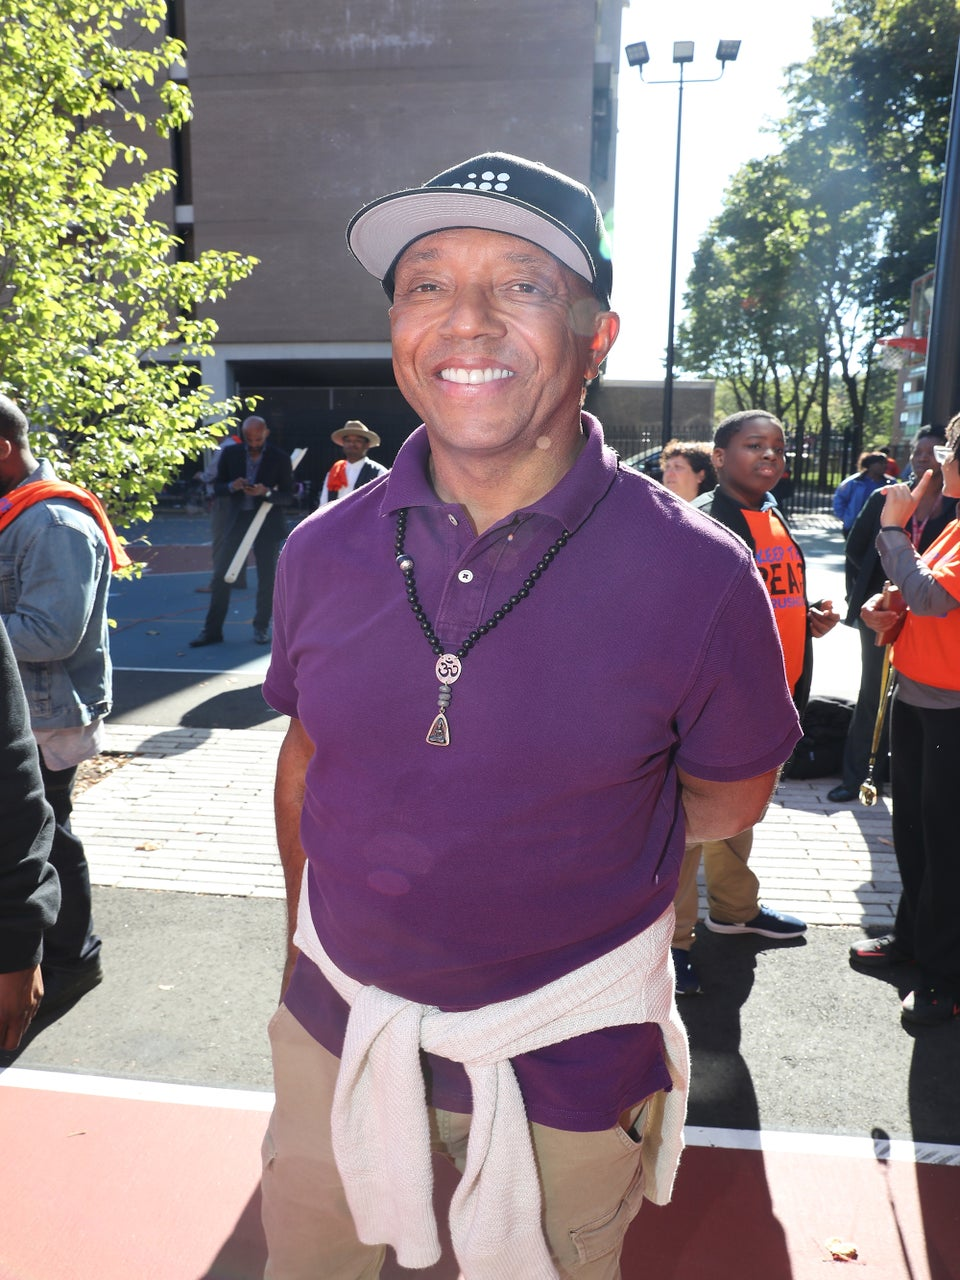 The Quick Read: HBO Cuts Ties With Russell Simmons Following Sexual Assault Allegations